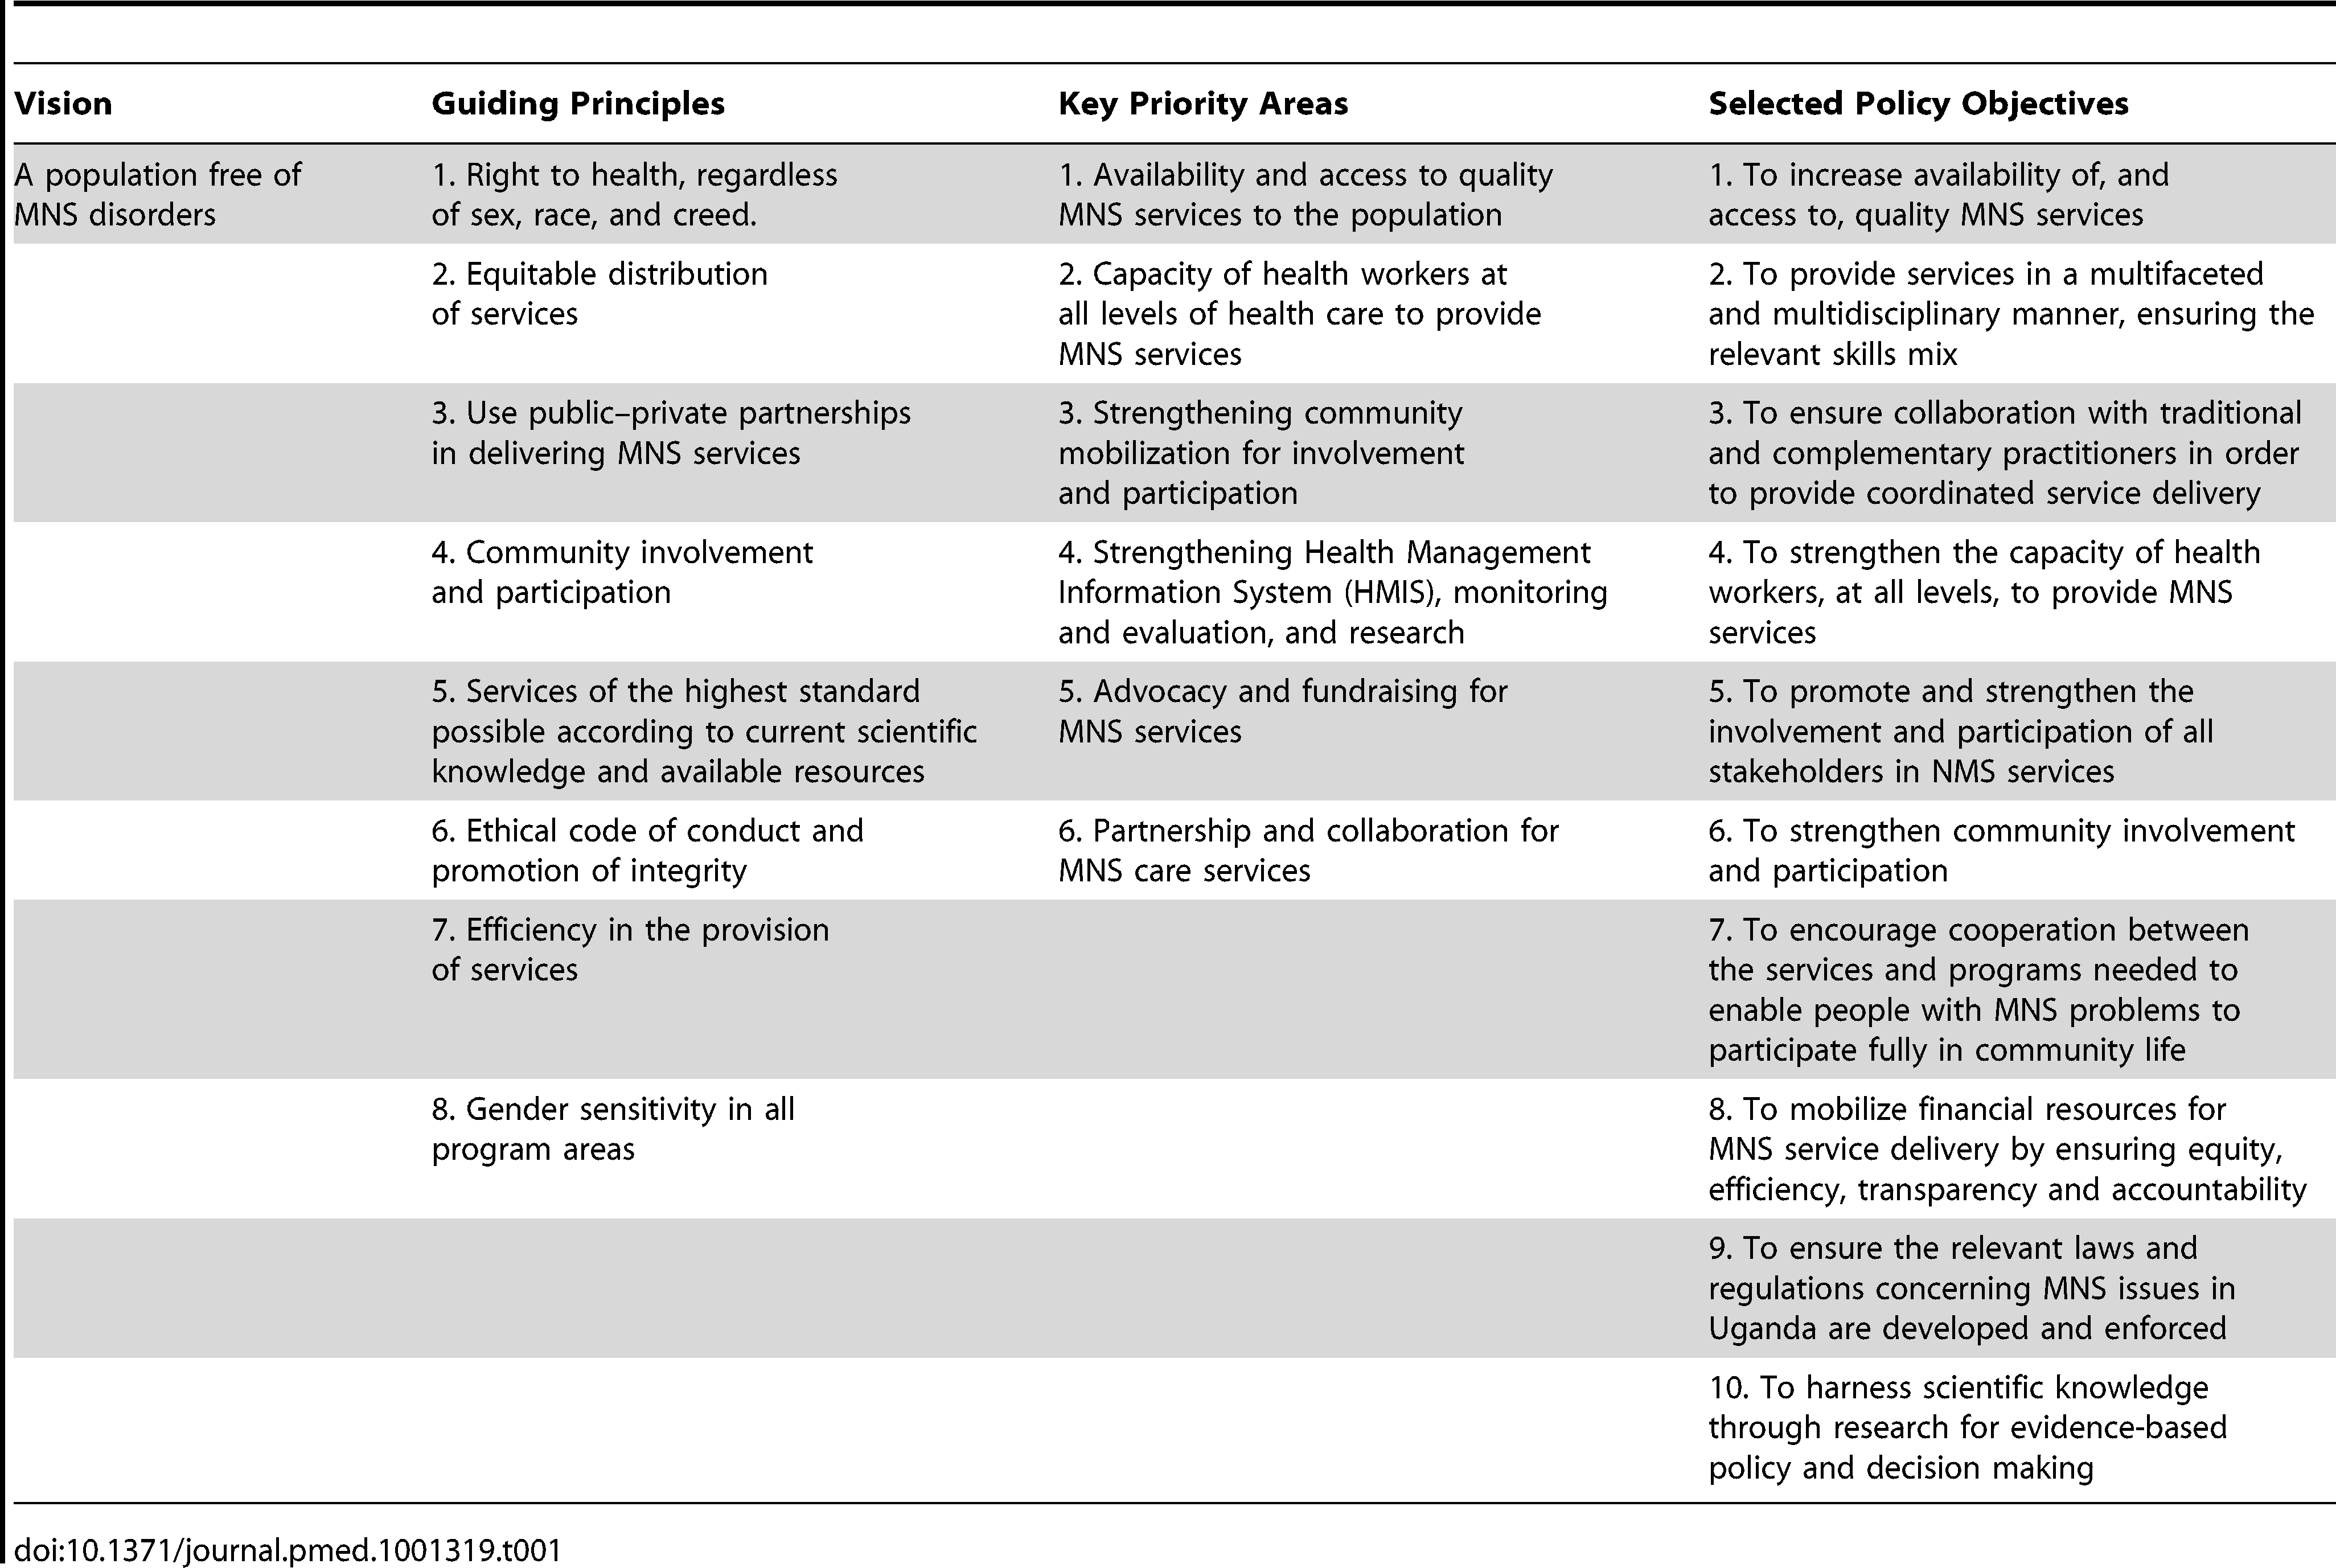 Vision, guiding principles, key priority areas, and selected policy objectives.